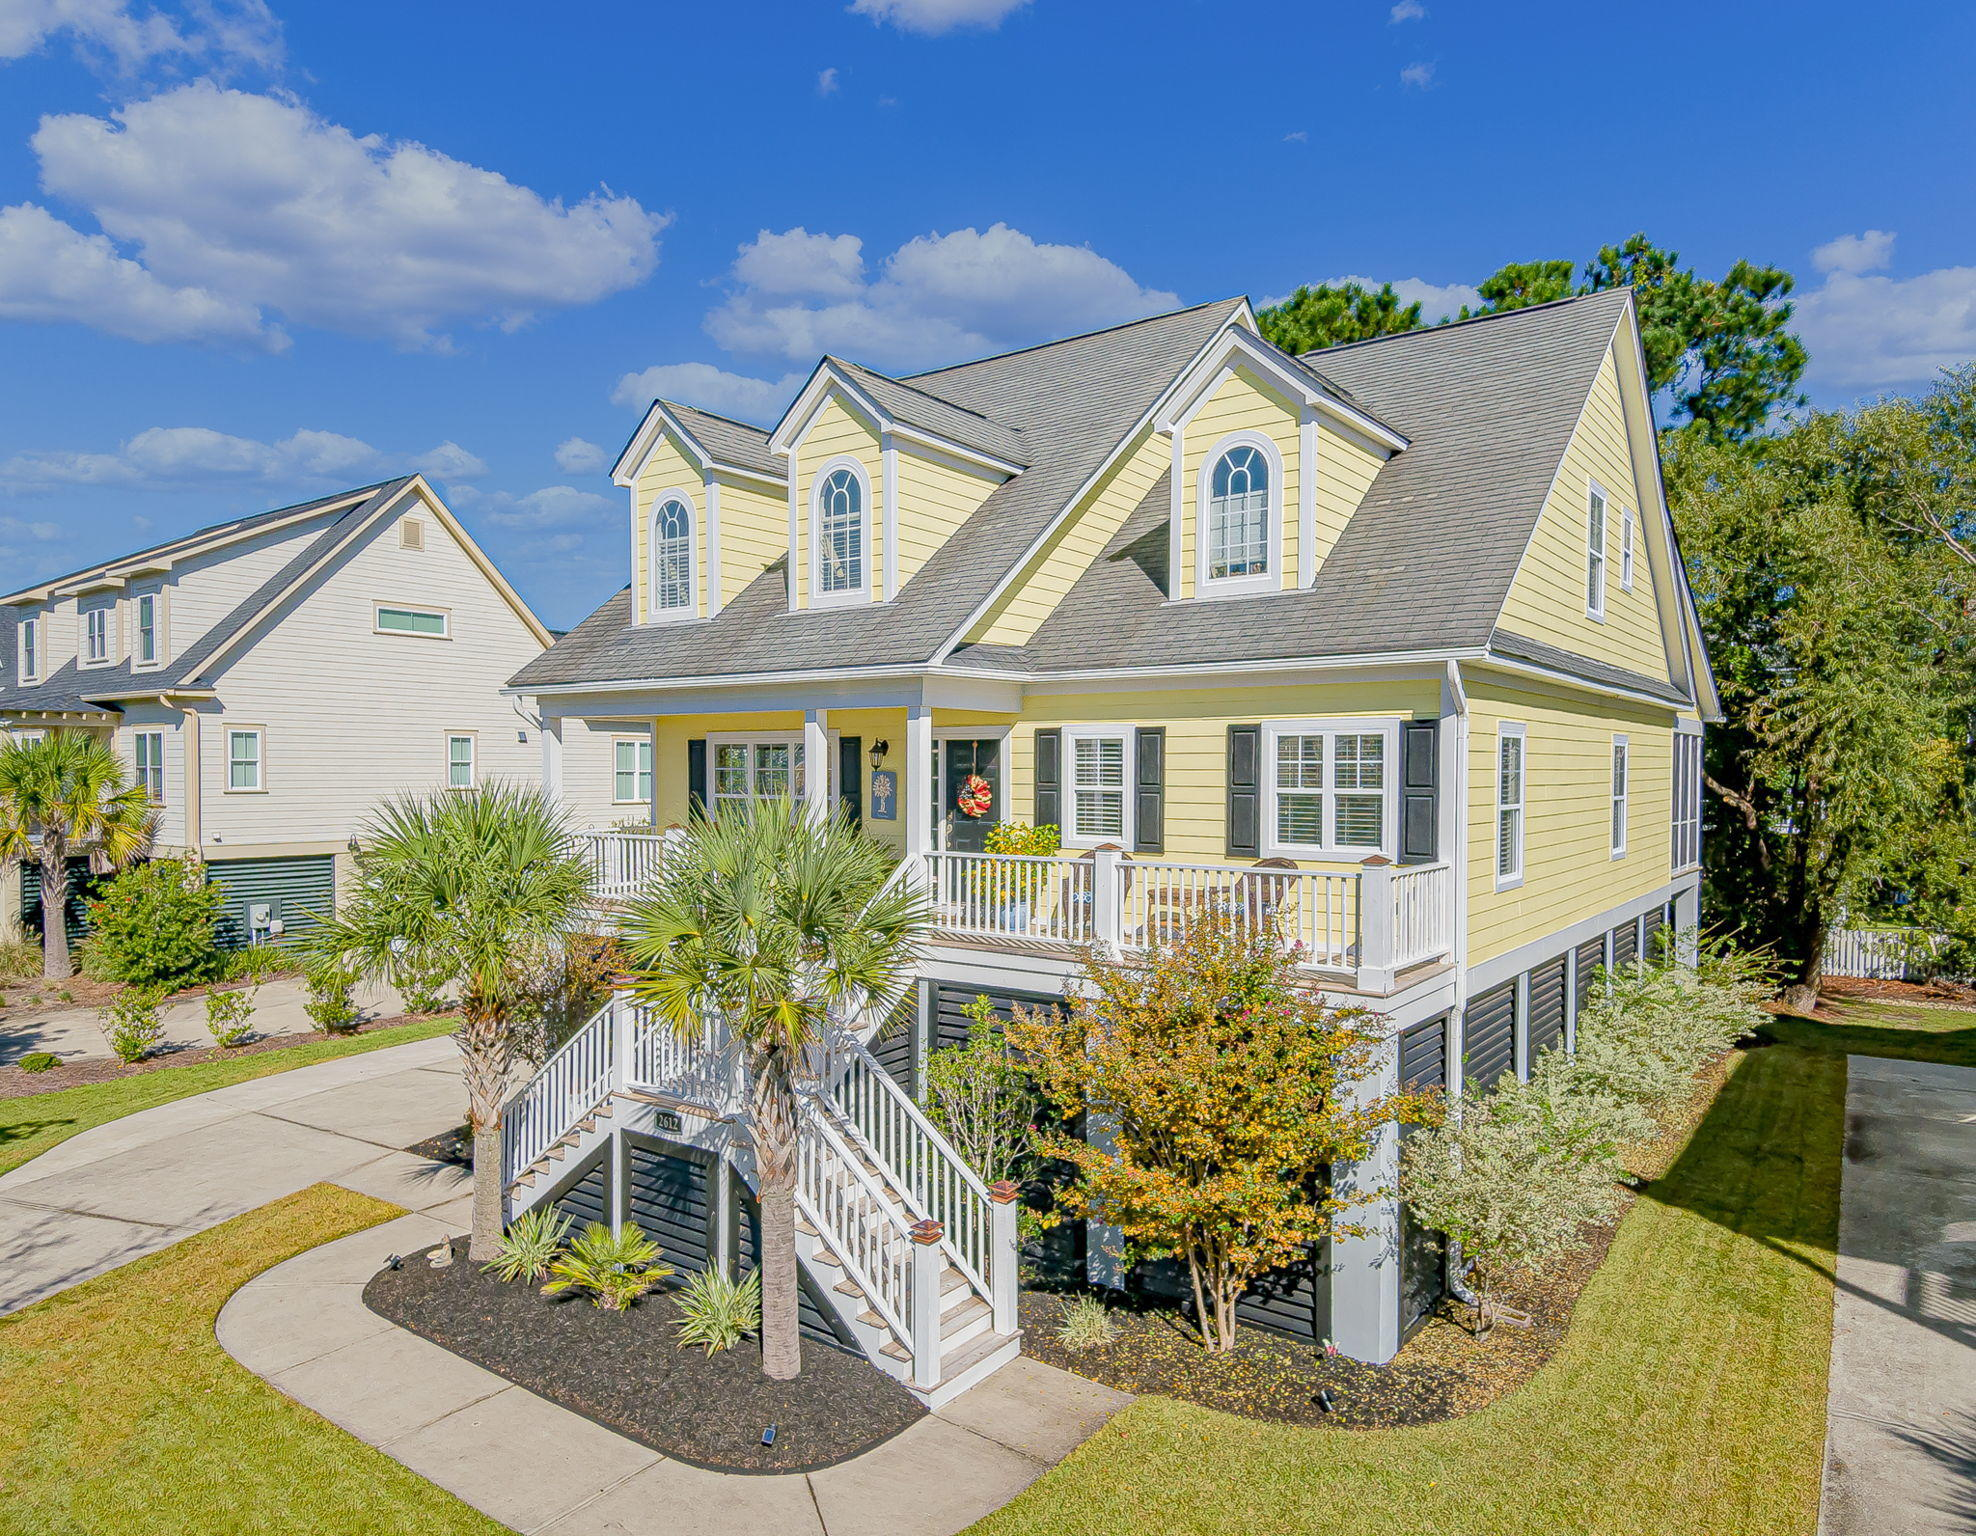 Rivertowne On The Wando Homes For Sale - 2612 Alderly, Mount Pleasant, SC - 38